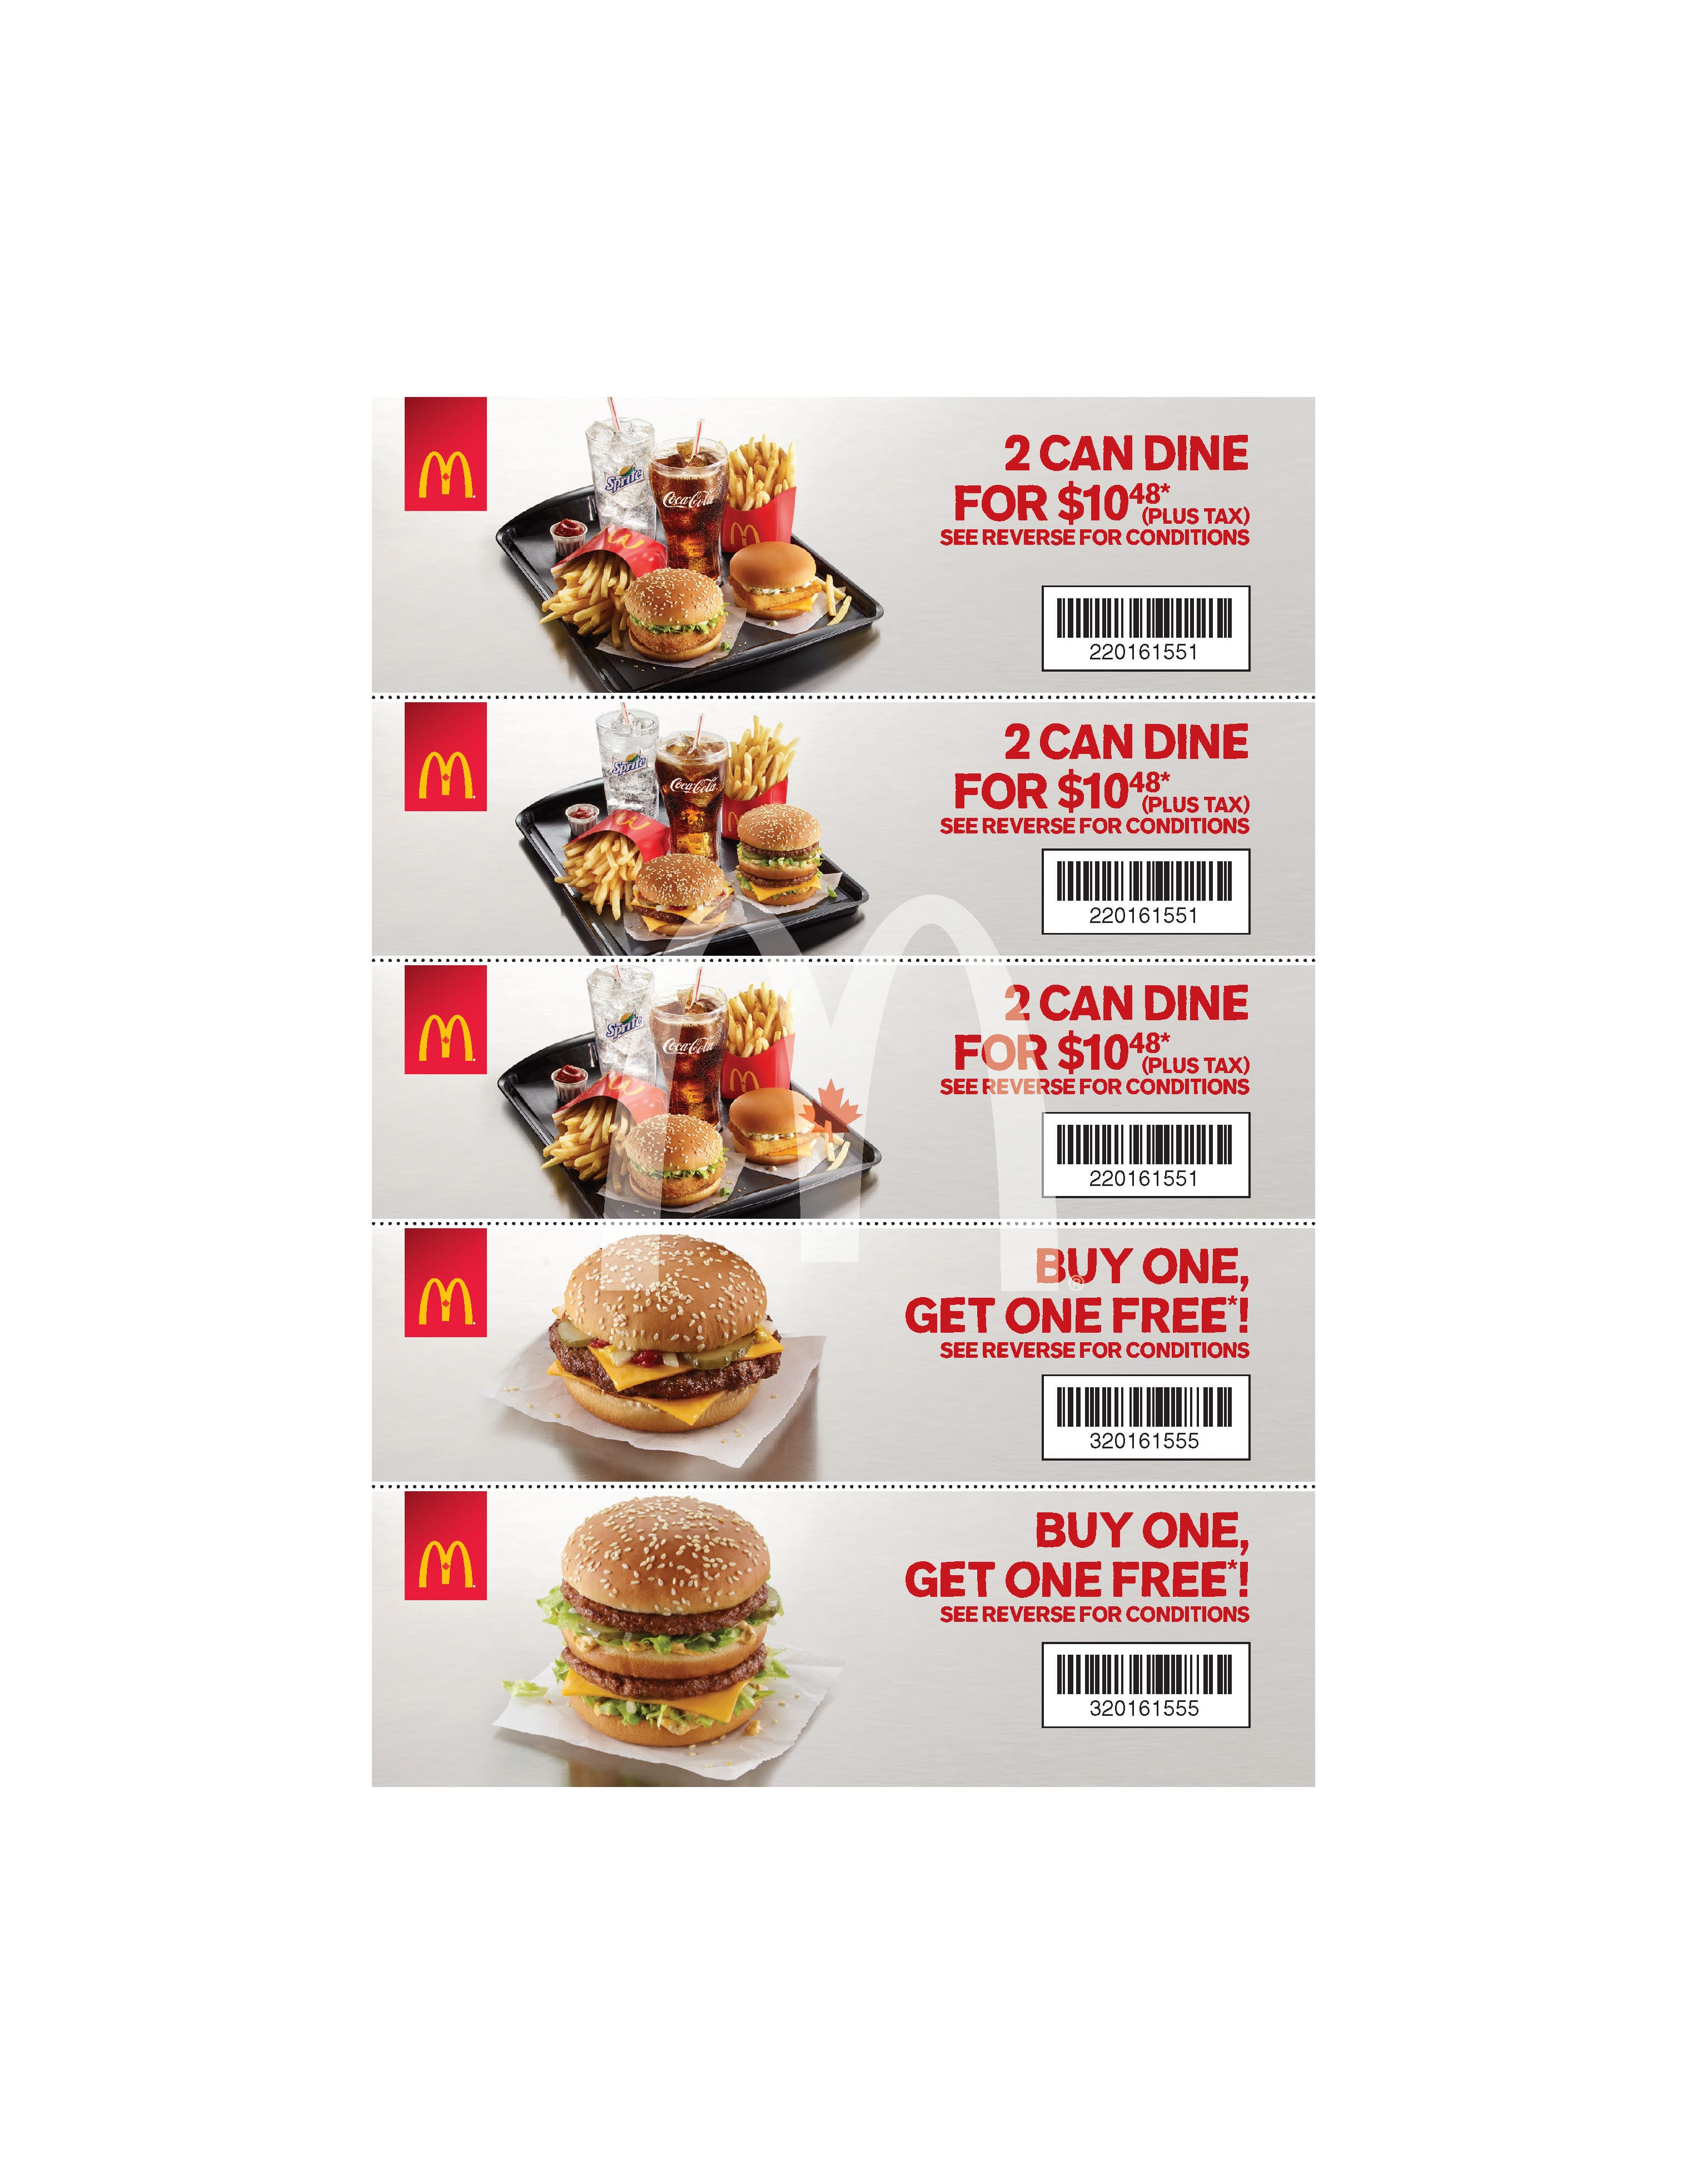 Sheet-Mcdonalds-Coupons-Free-Printable – Printable Coupons Online - Free Printable Mcdonalds Coupons Online